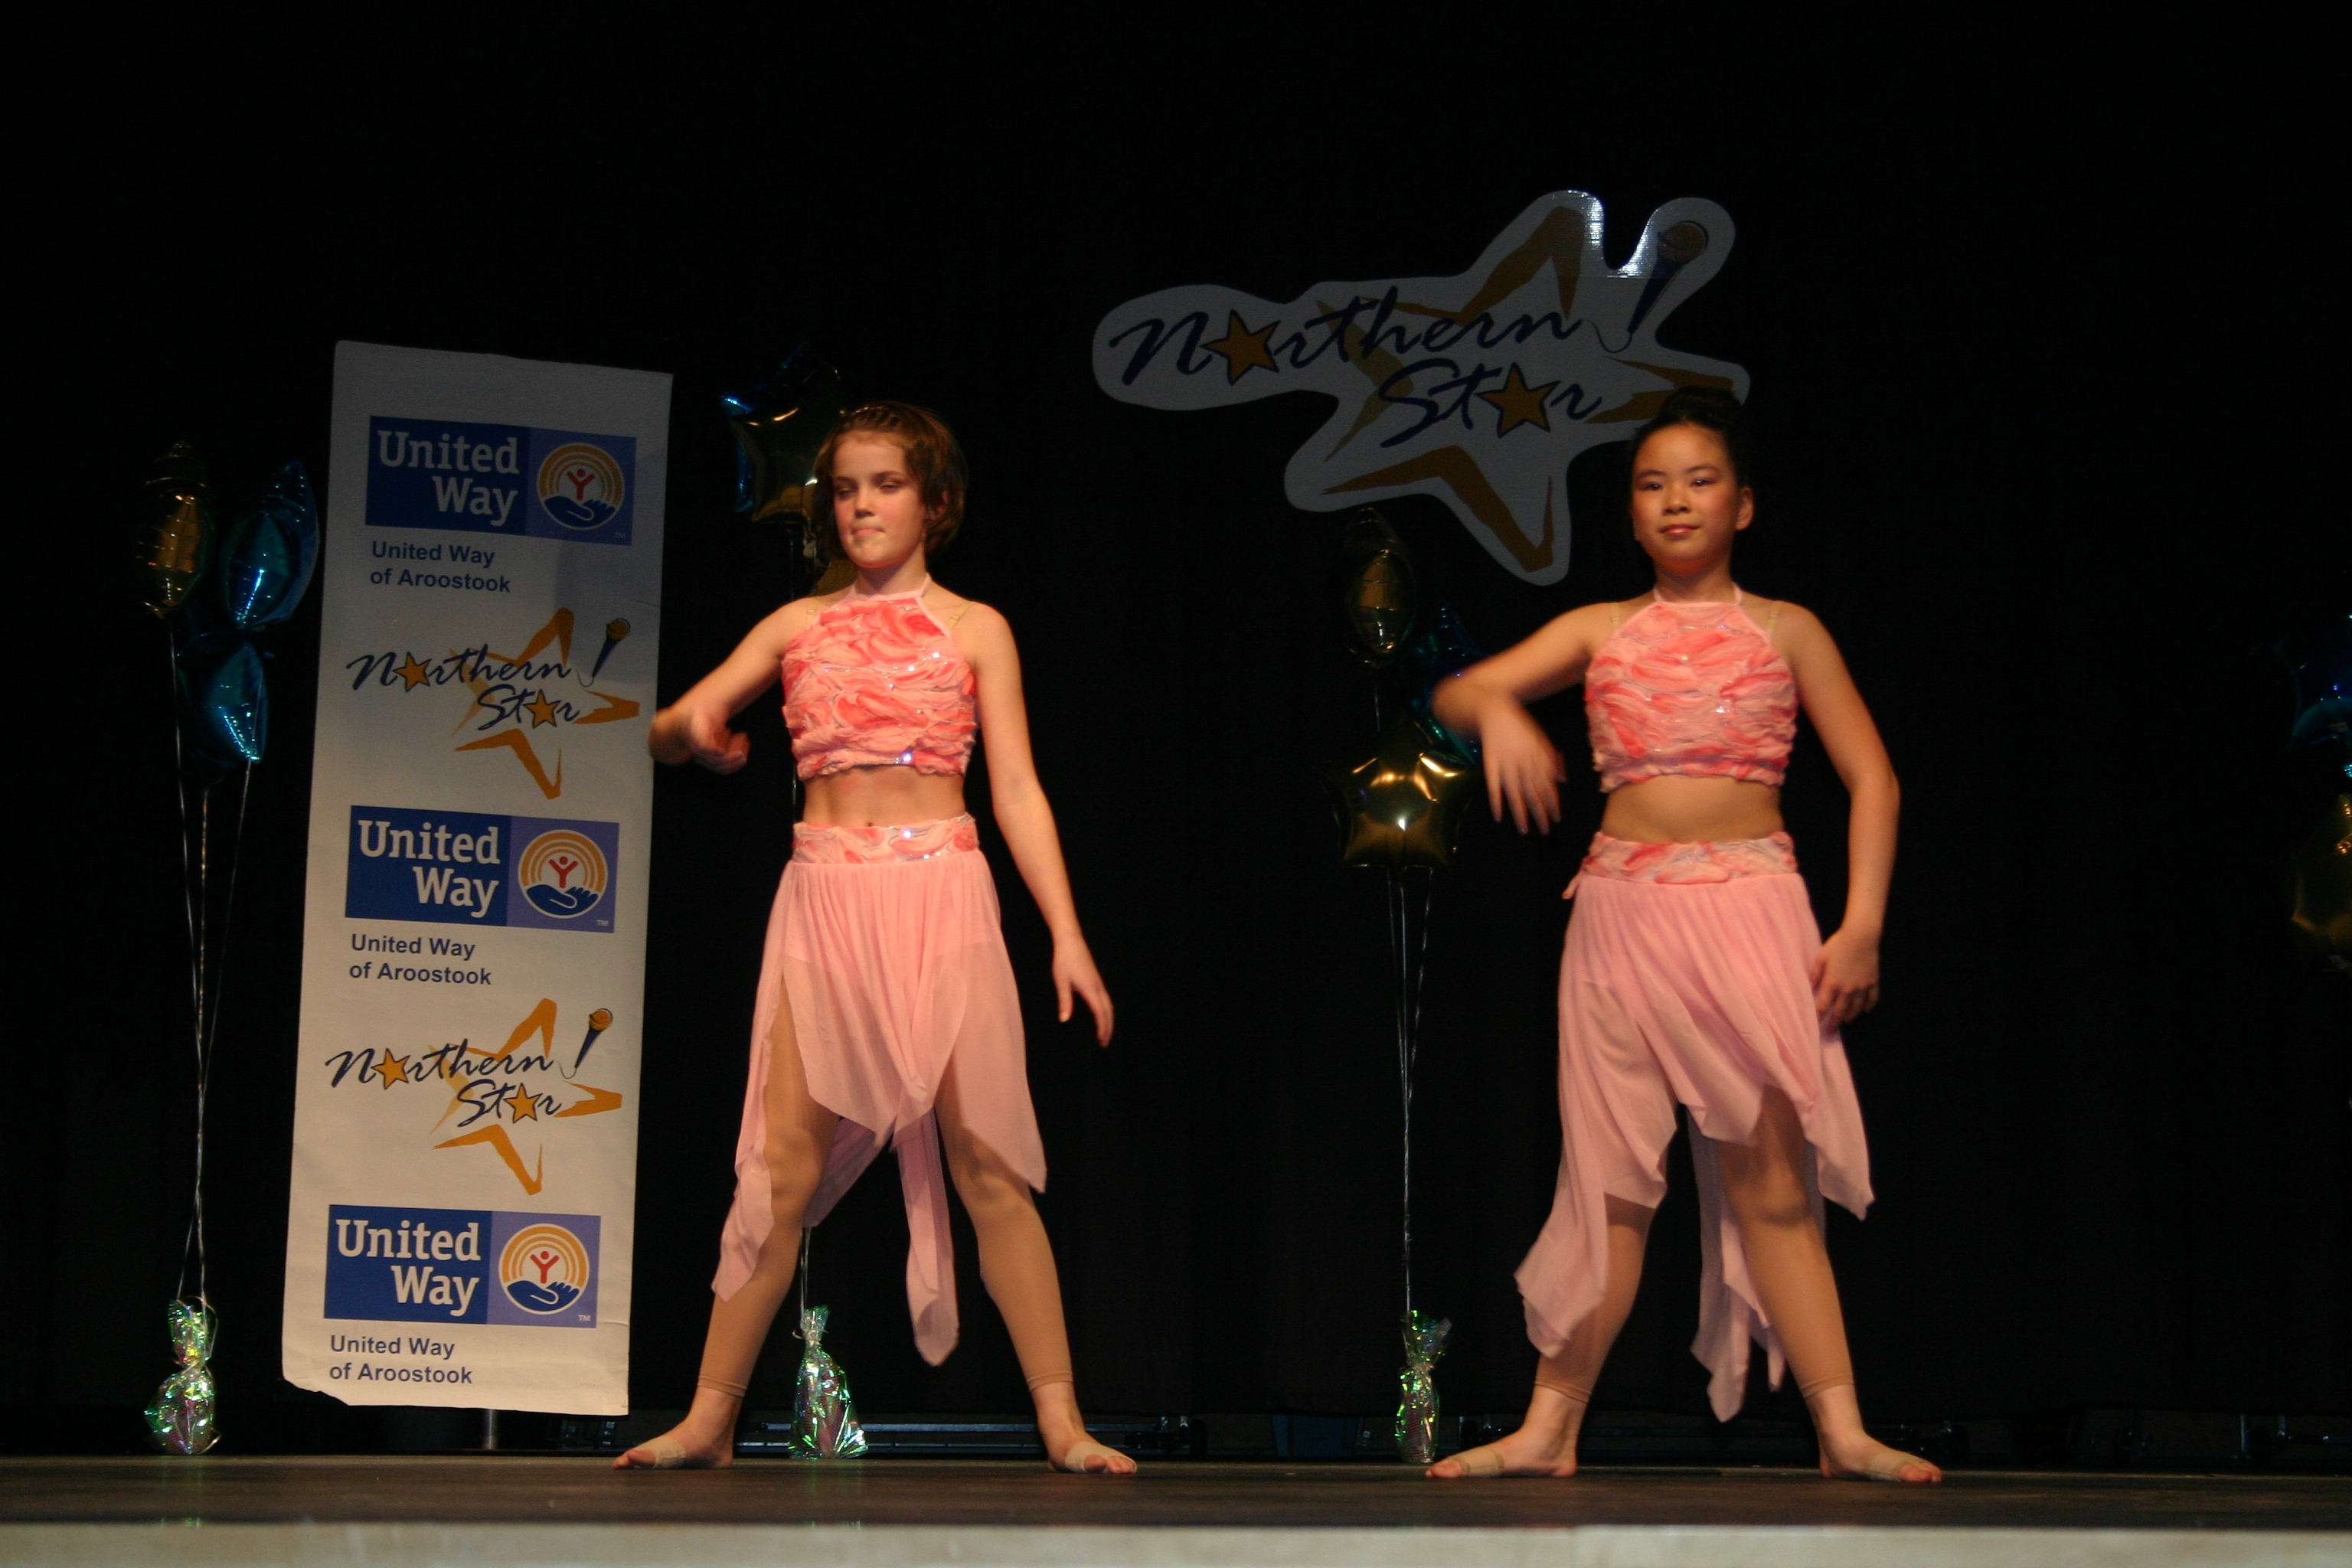 Young talent shines at Presque Isle Northern Star